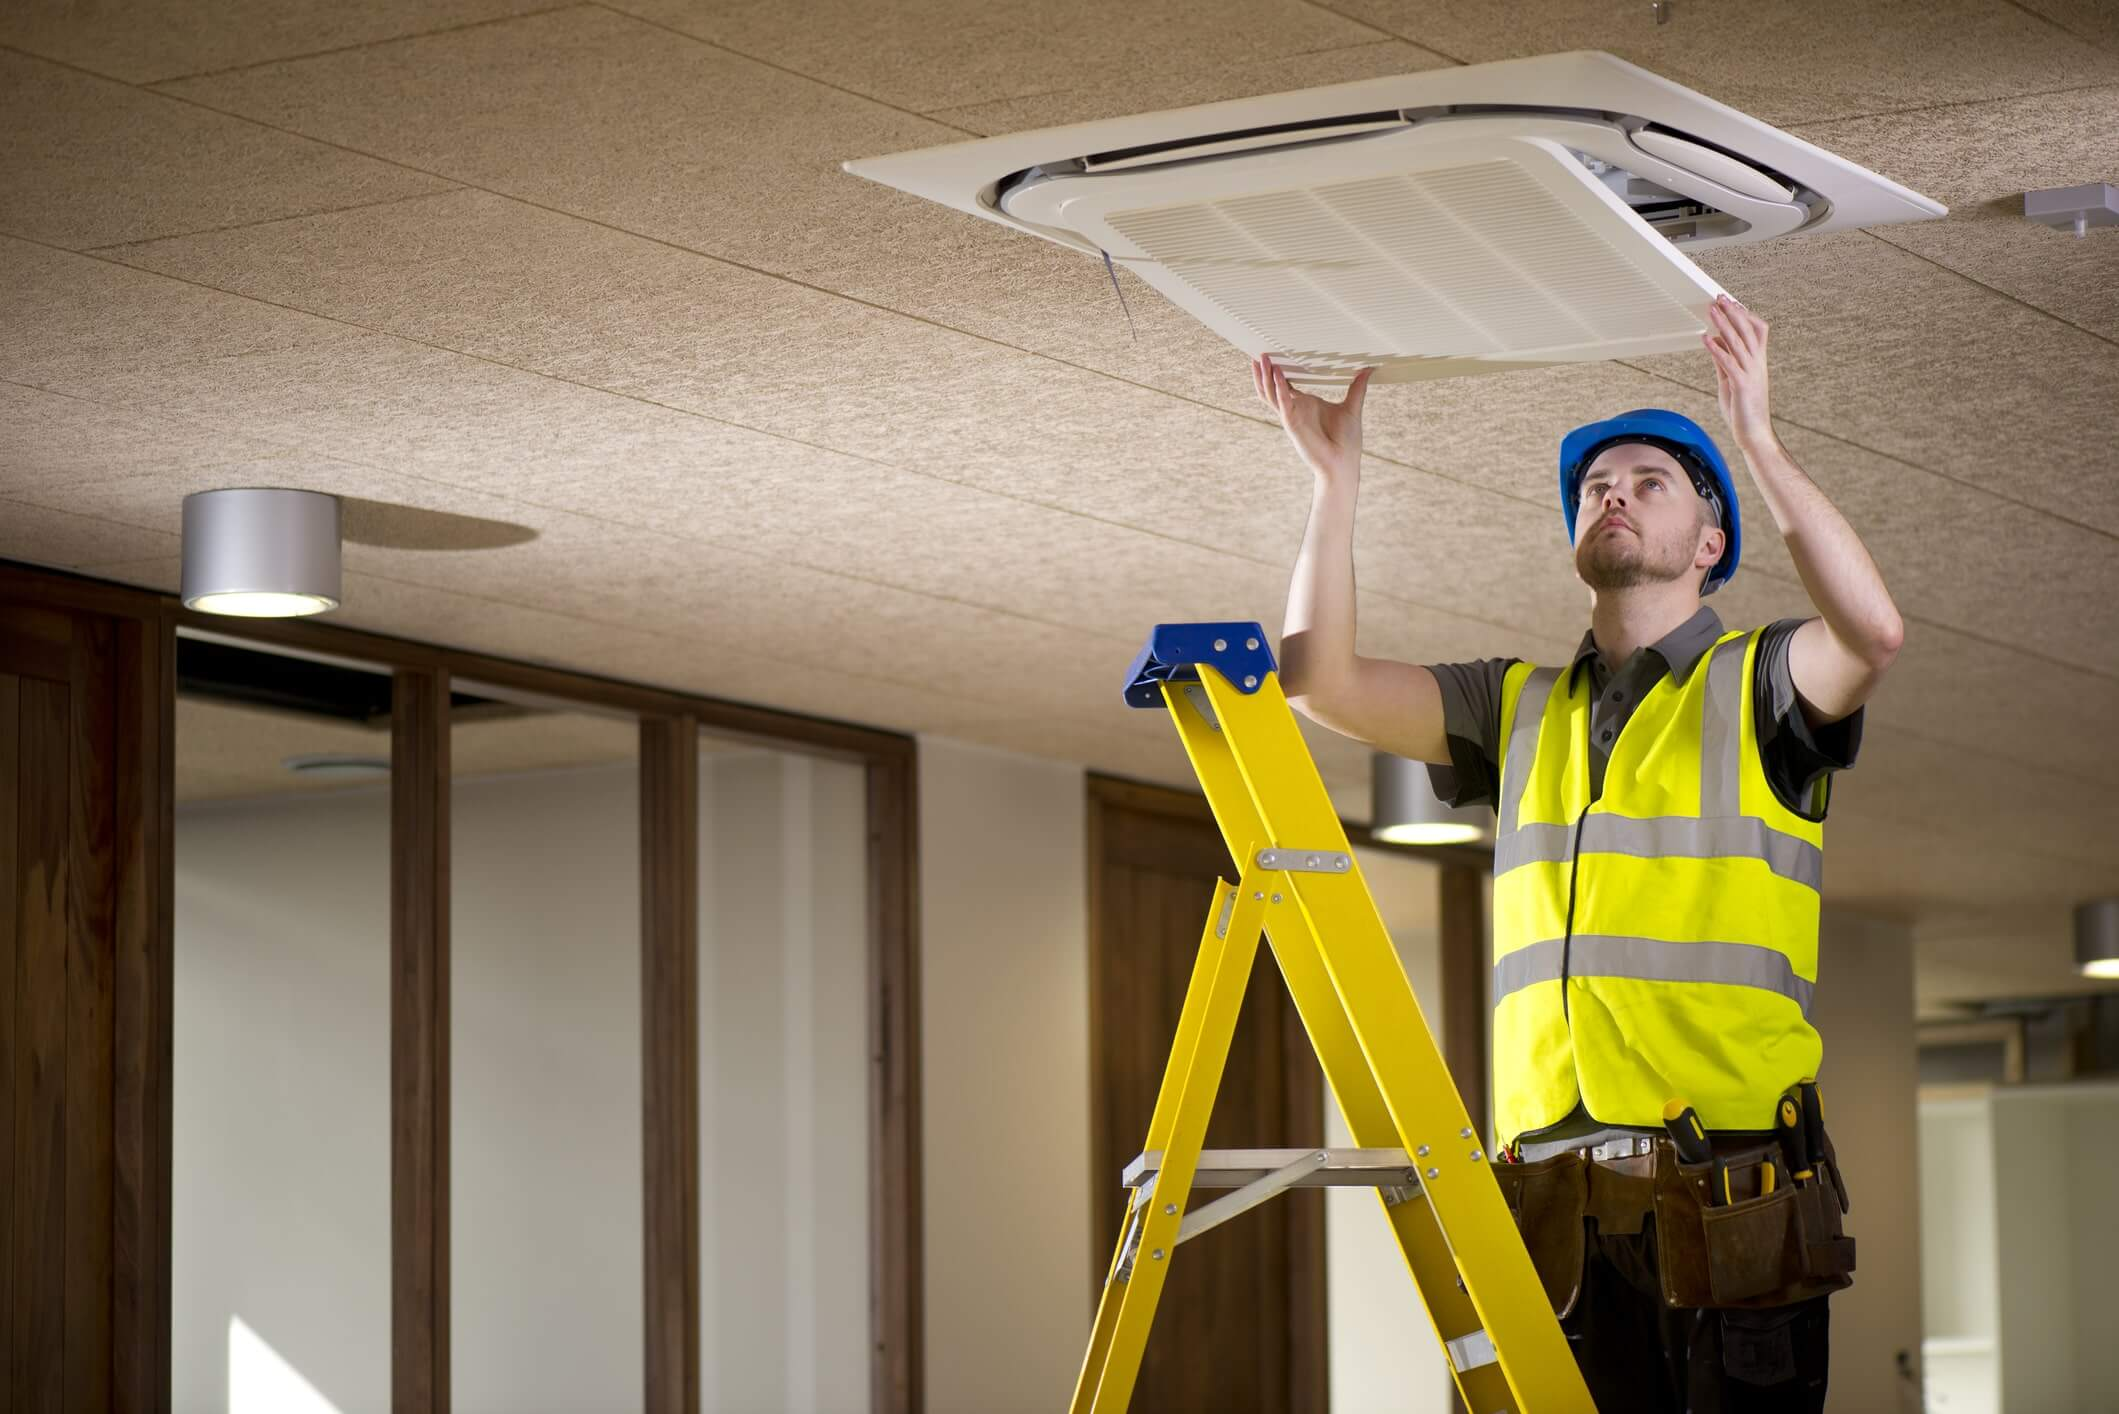 An HVAC technician standing on a ladder and removing a vent cover